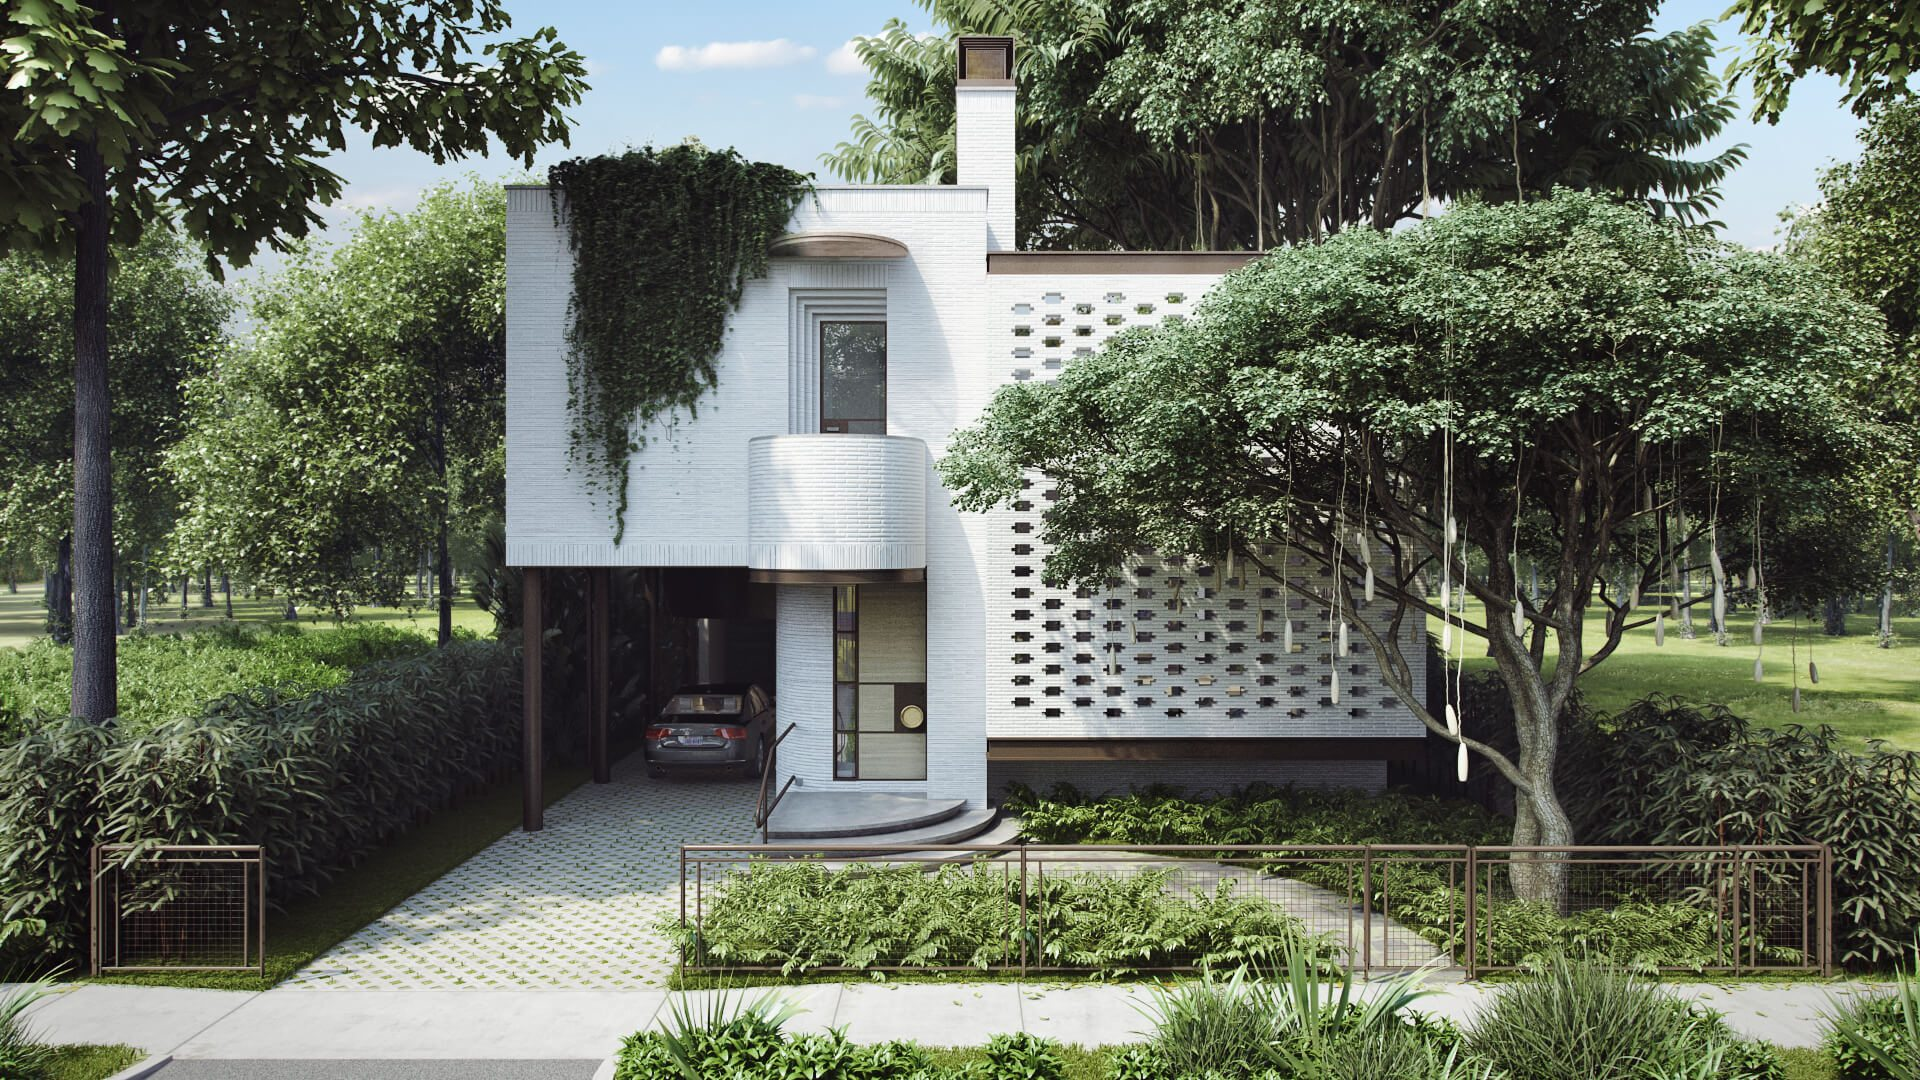 3D Rendering Of a House Surrounded By Greenery